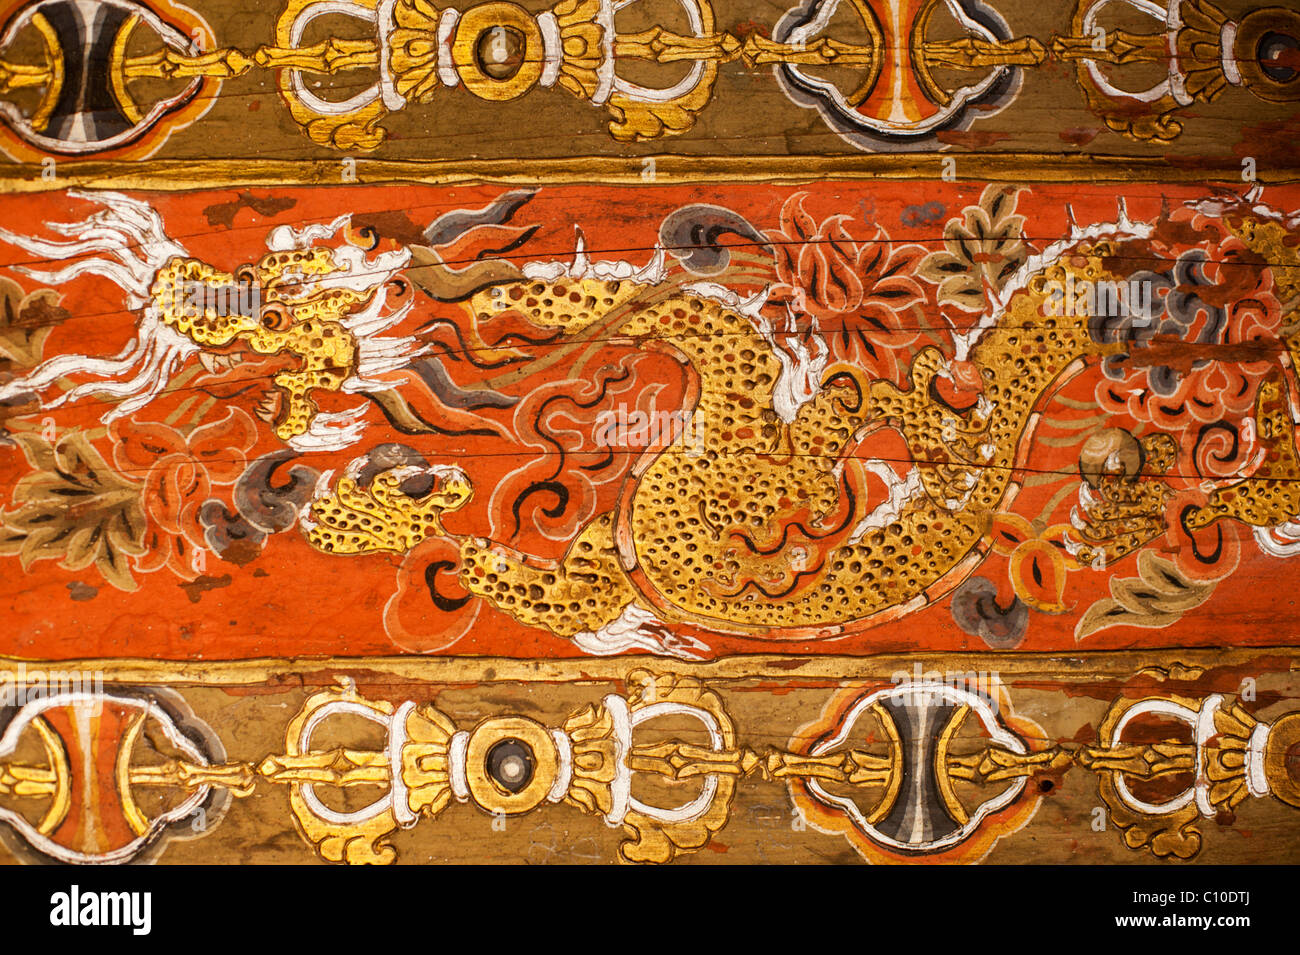 Thunder dragon design on a chorten in Thimpu symbolizing the nation and people of Bhutan - Stock Image